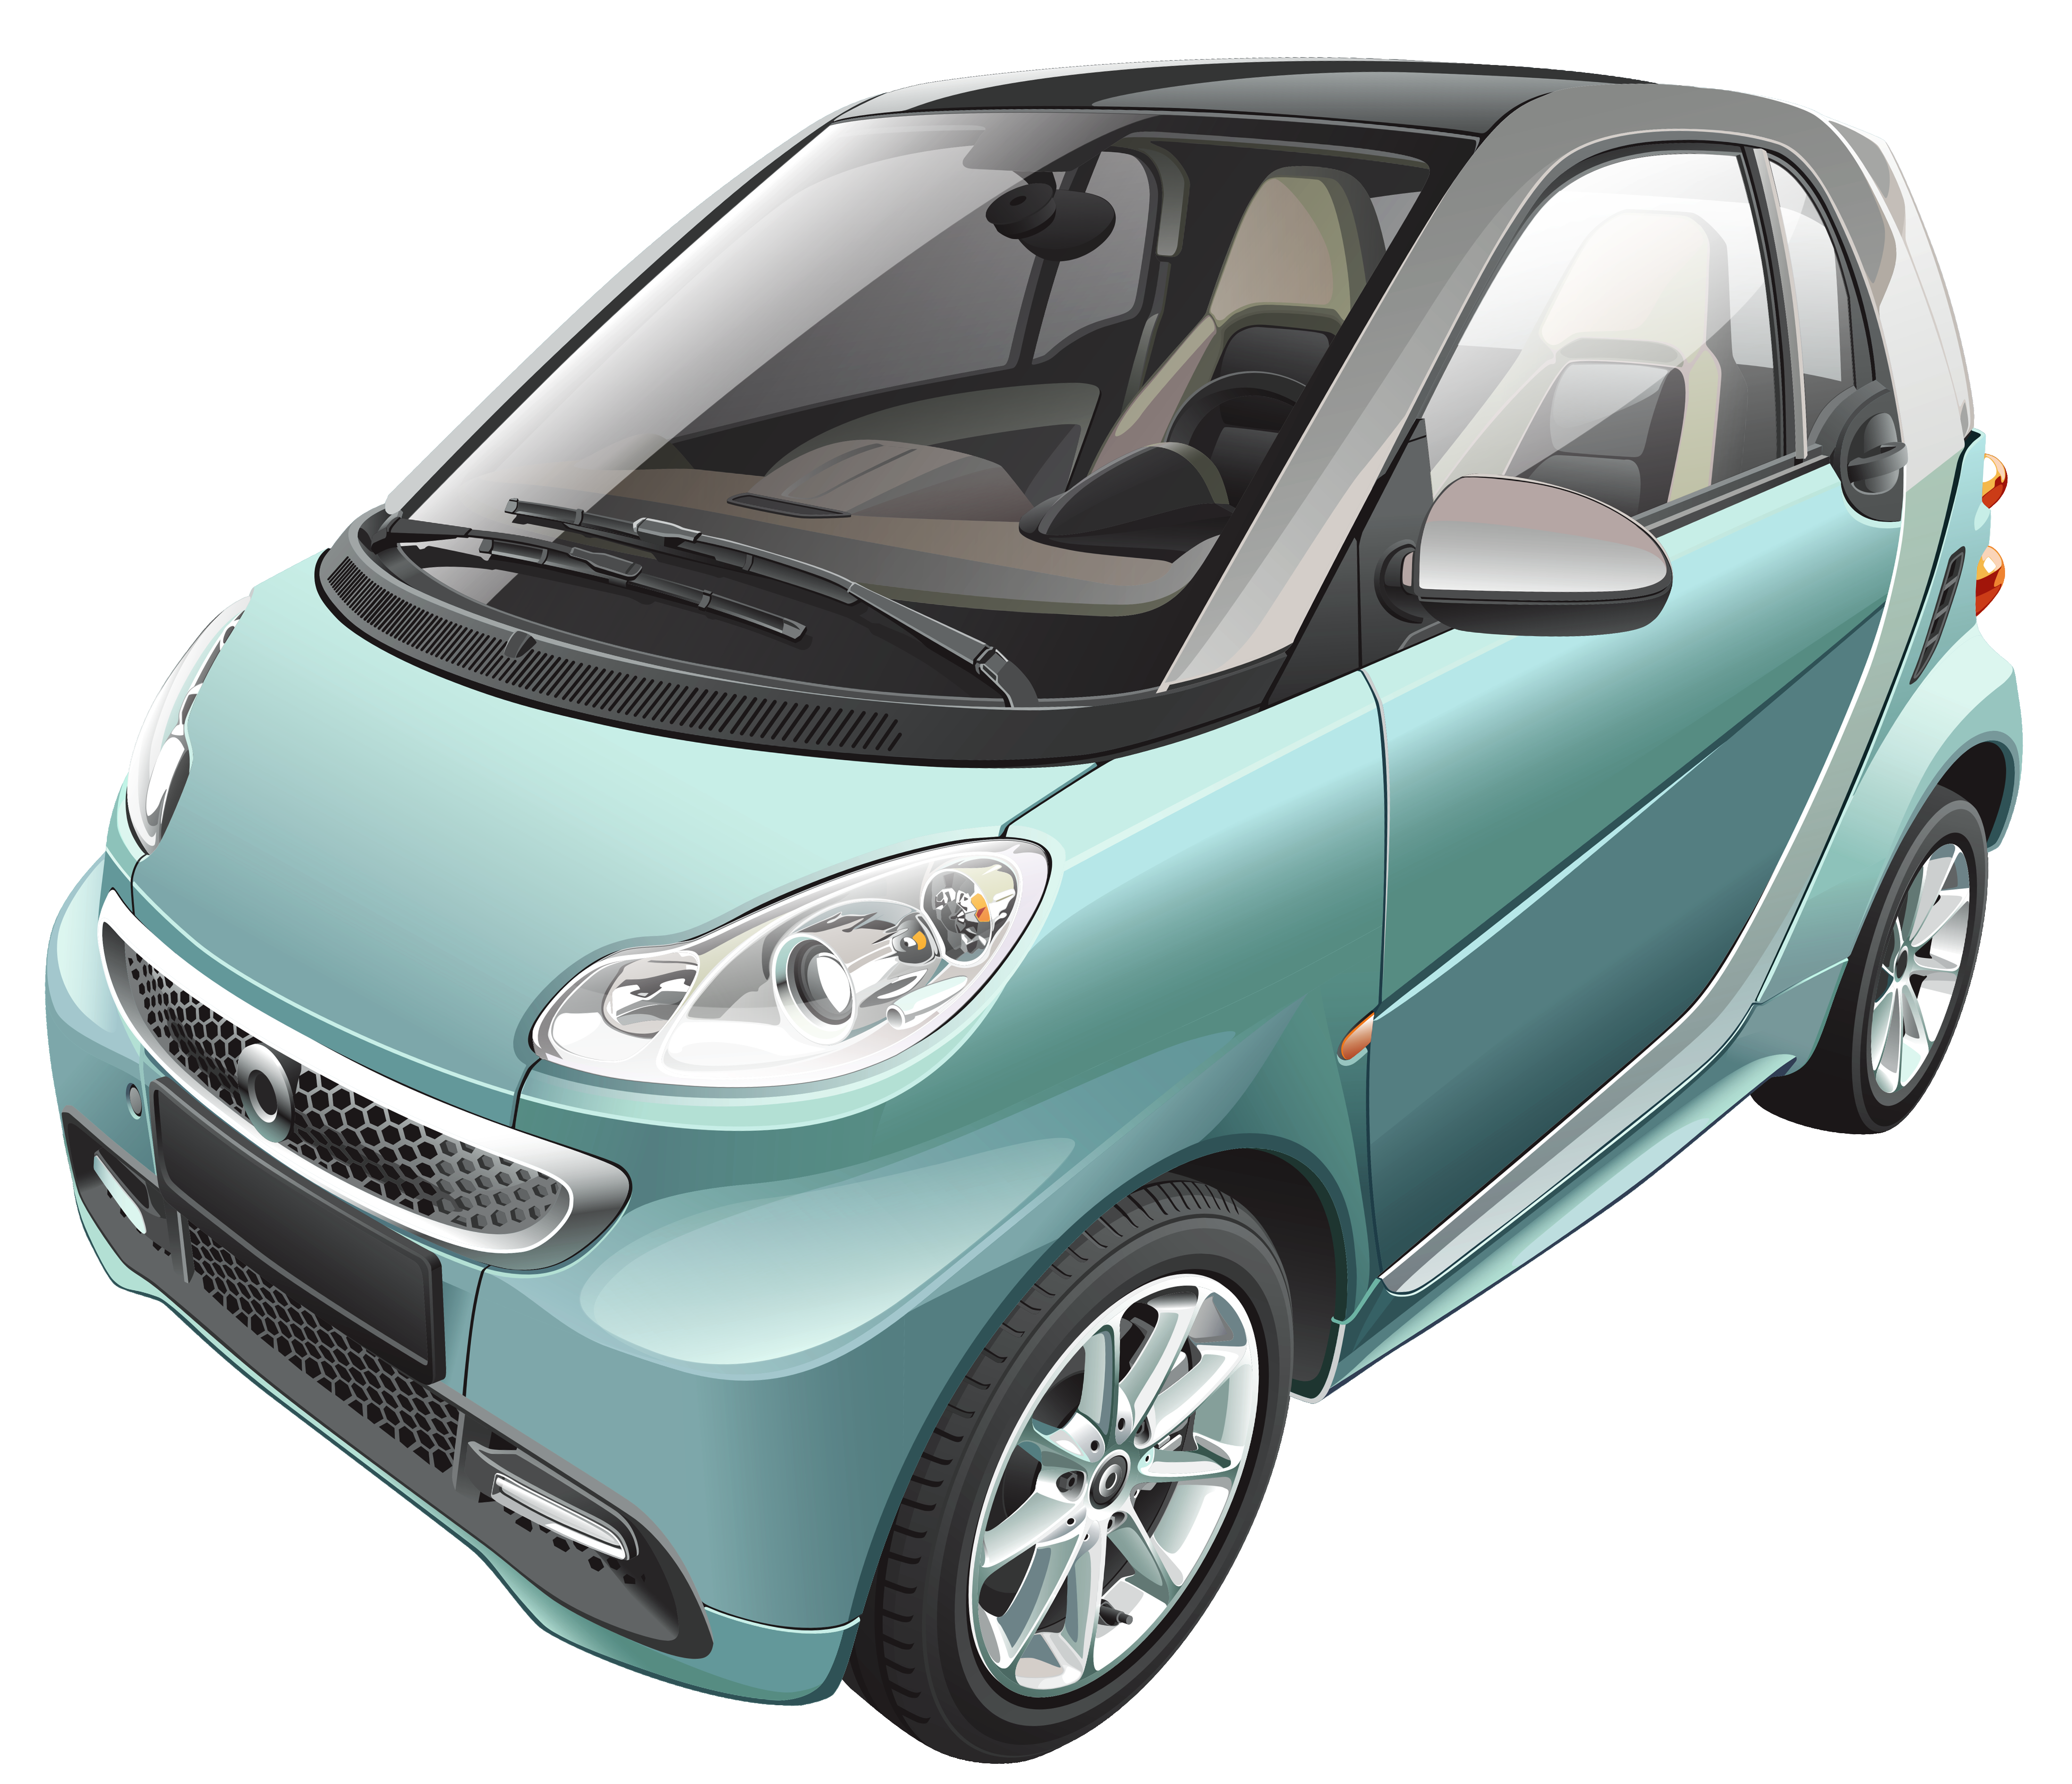 City car clipart image royalty free download Car Mini PNG Clip Art - Best WEB Clipart image royalty free download